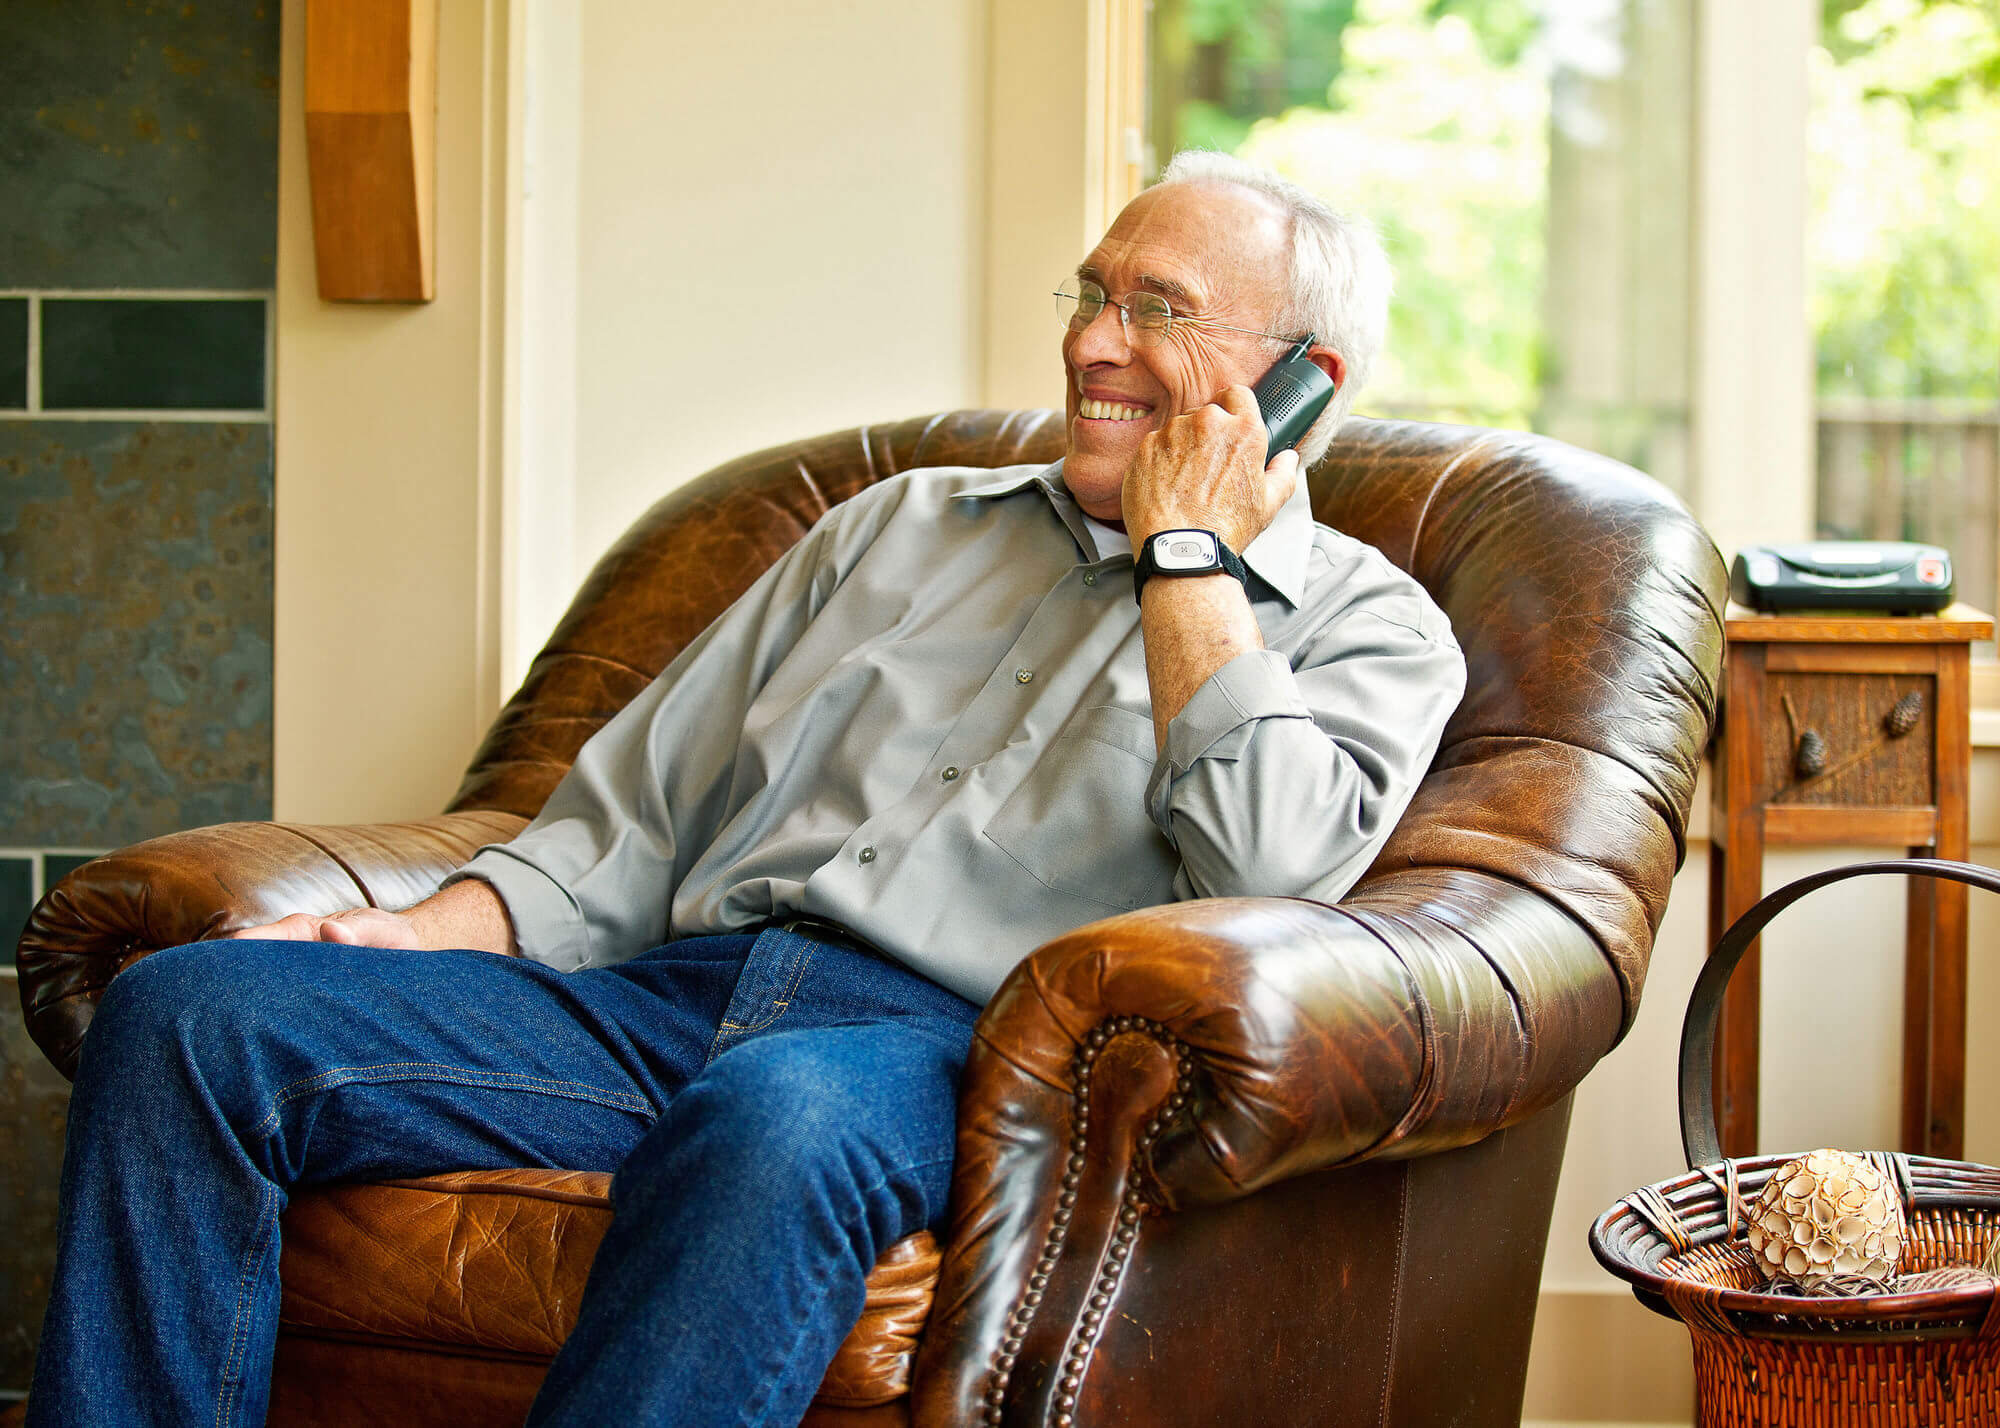 Man on phone in leather chair